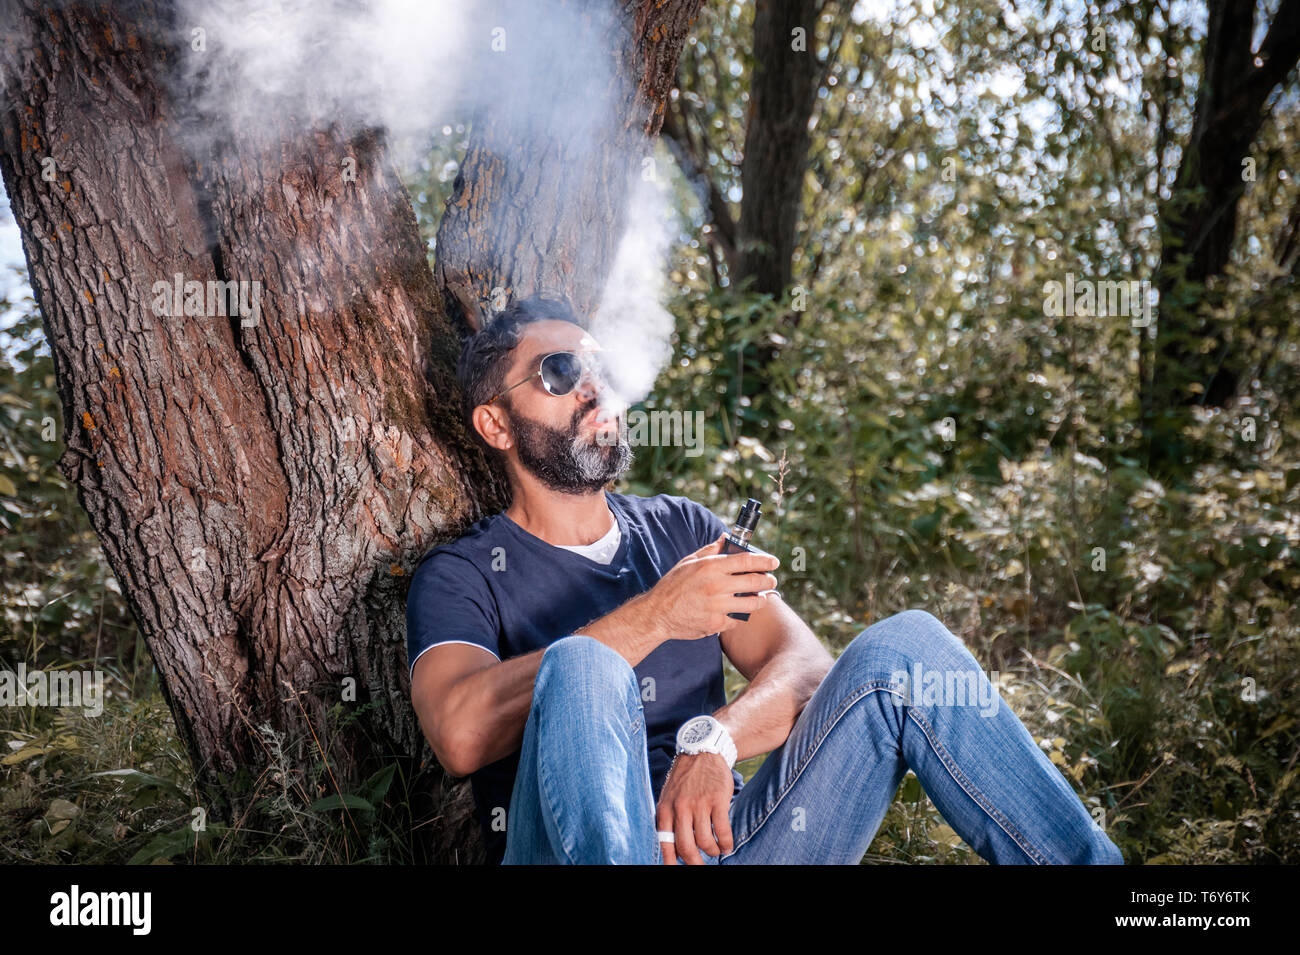 Brutal smoker blows up a couple an electronic cigarette on the ground. Electronic cigarette concept. - Stock Image